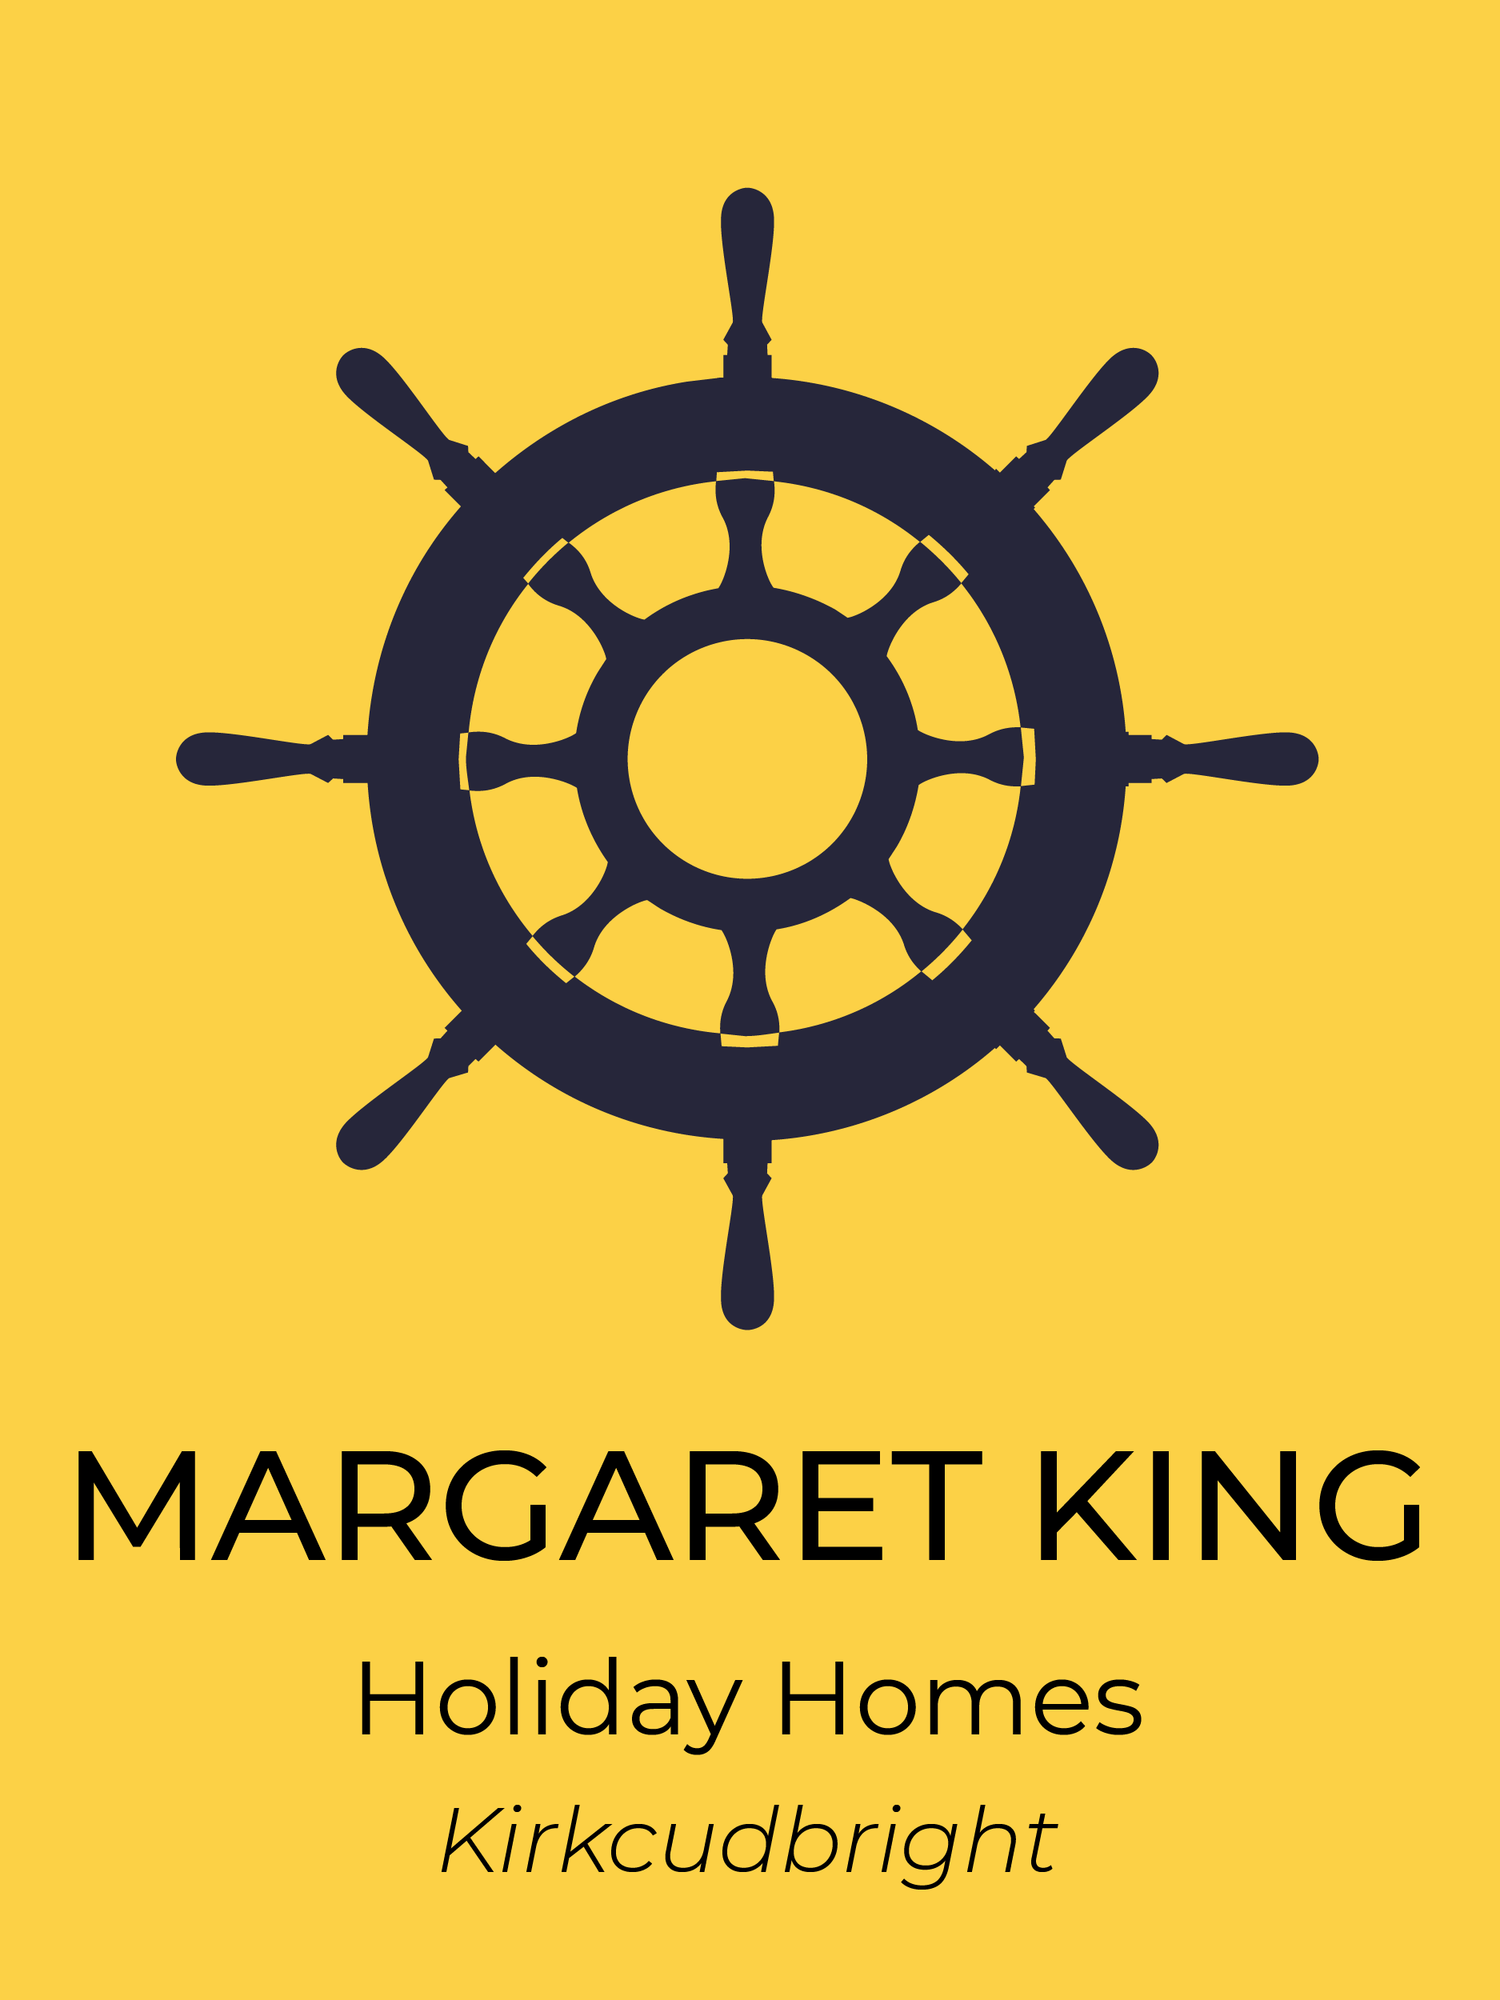 Margaret King Holiday Homes Kirkcudbright